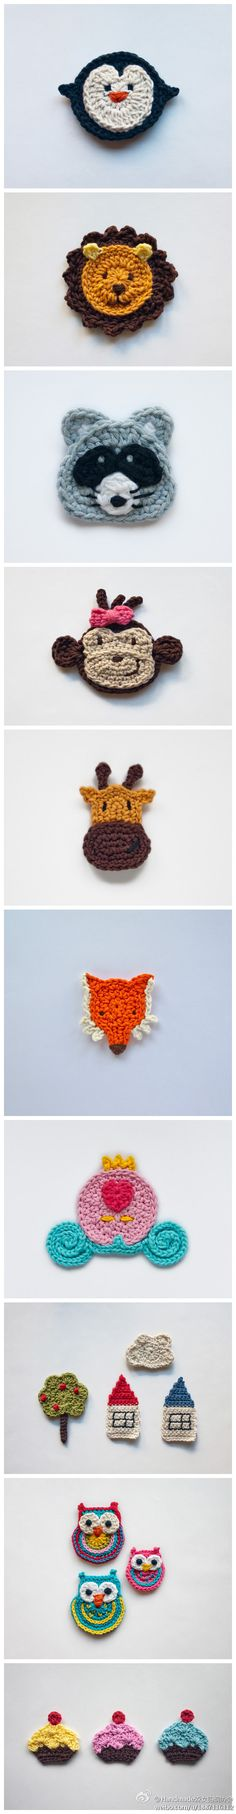 animals, cinderella's carriage - good embellishments for a blanket/ hat/ scarf?